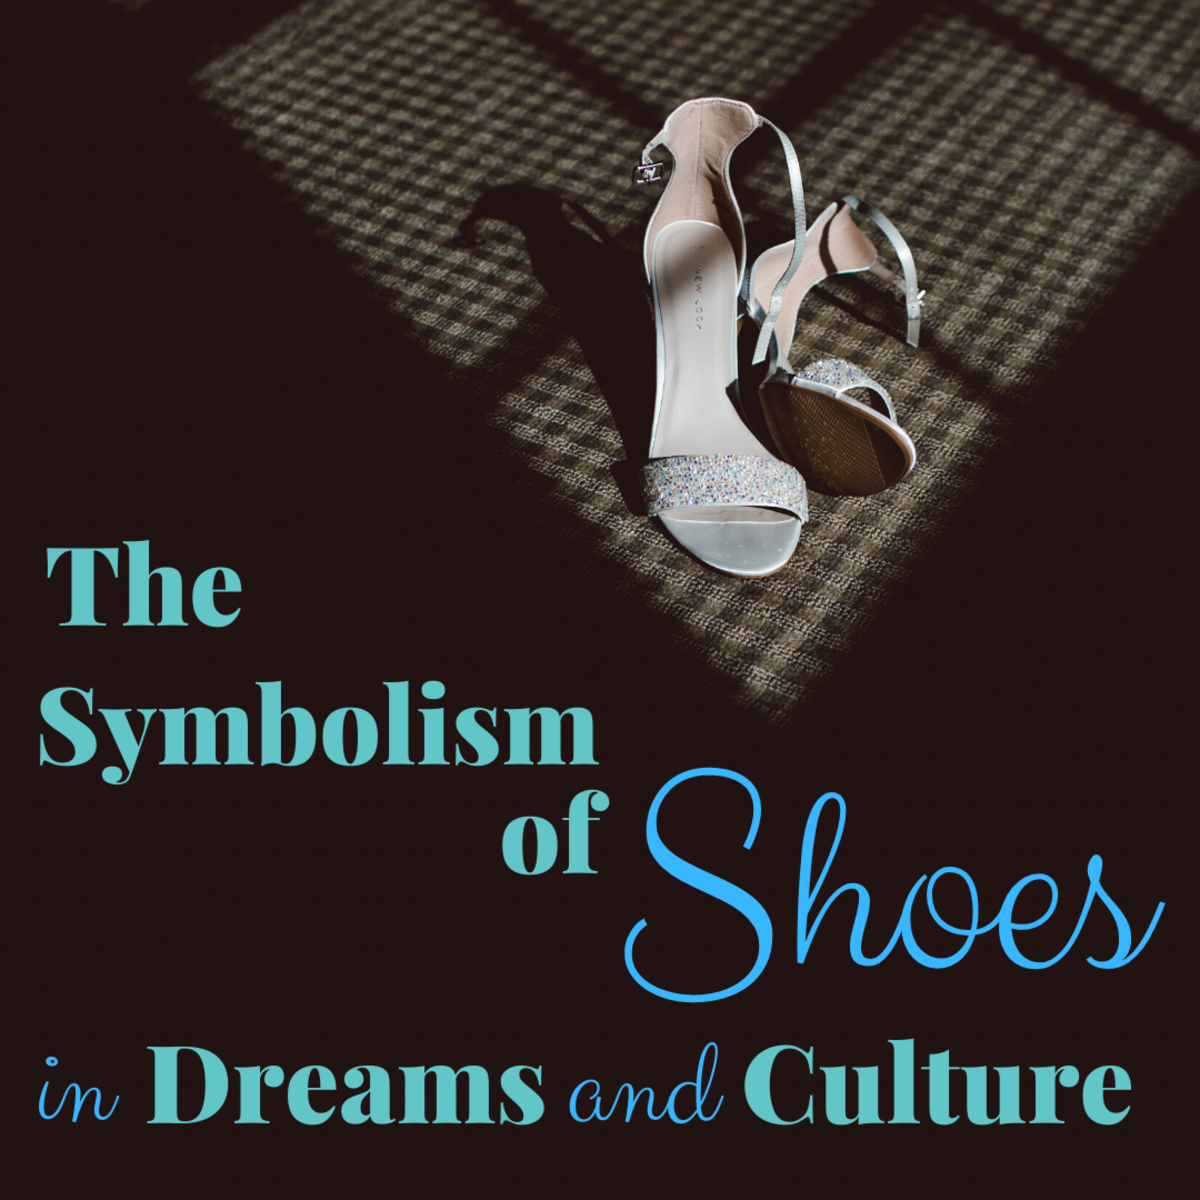 The Symbolic Meaning of Shoes